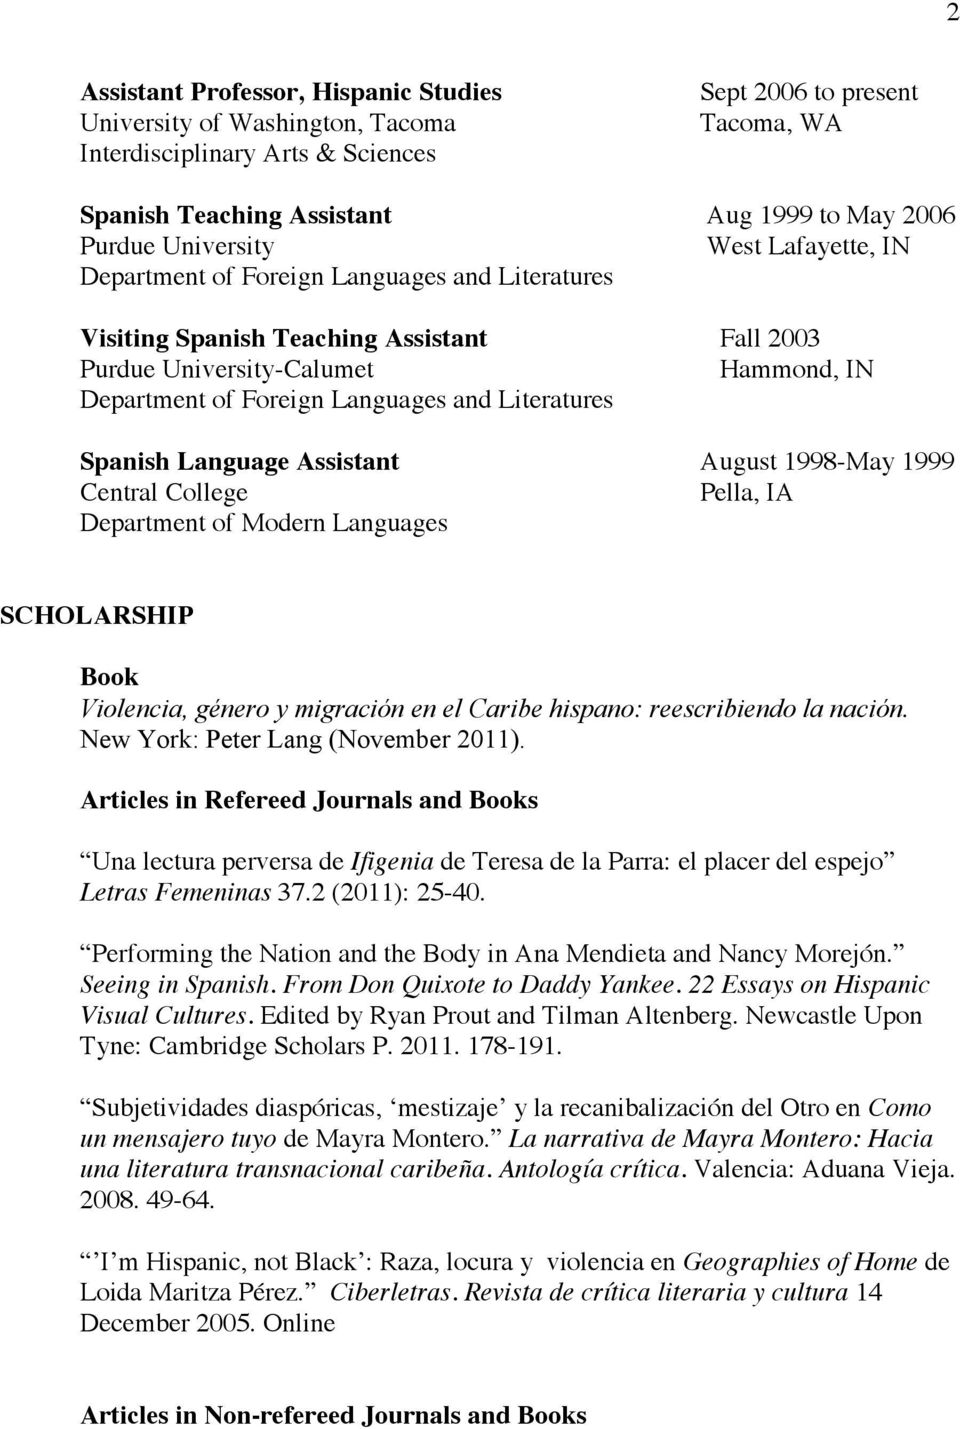 Literatures Spanish Language Assistant August 1998-May 1999 Central College Pella, IA Department of Modern Languages SCHOLARSHIP Book Violencia, género y migración en el Caribe hispano: reescribiendo